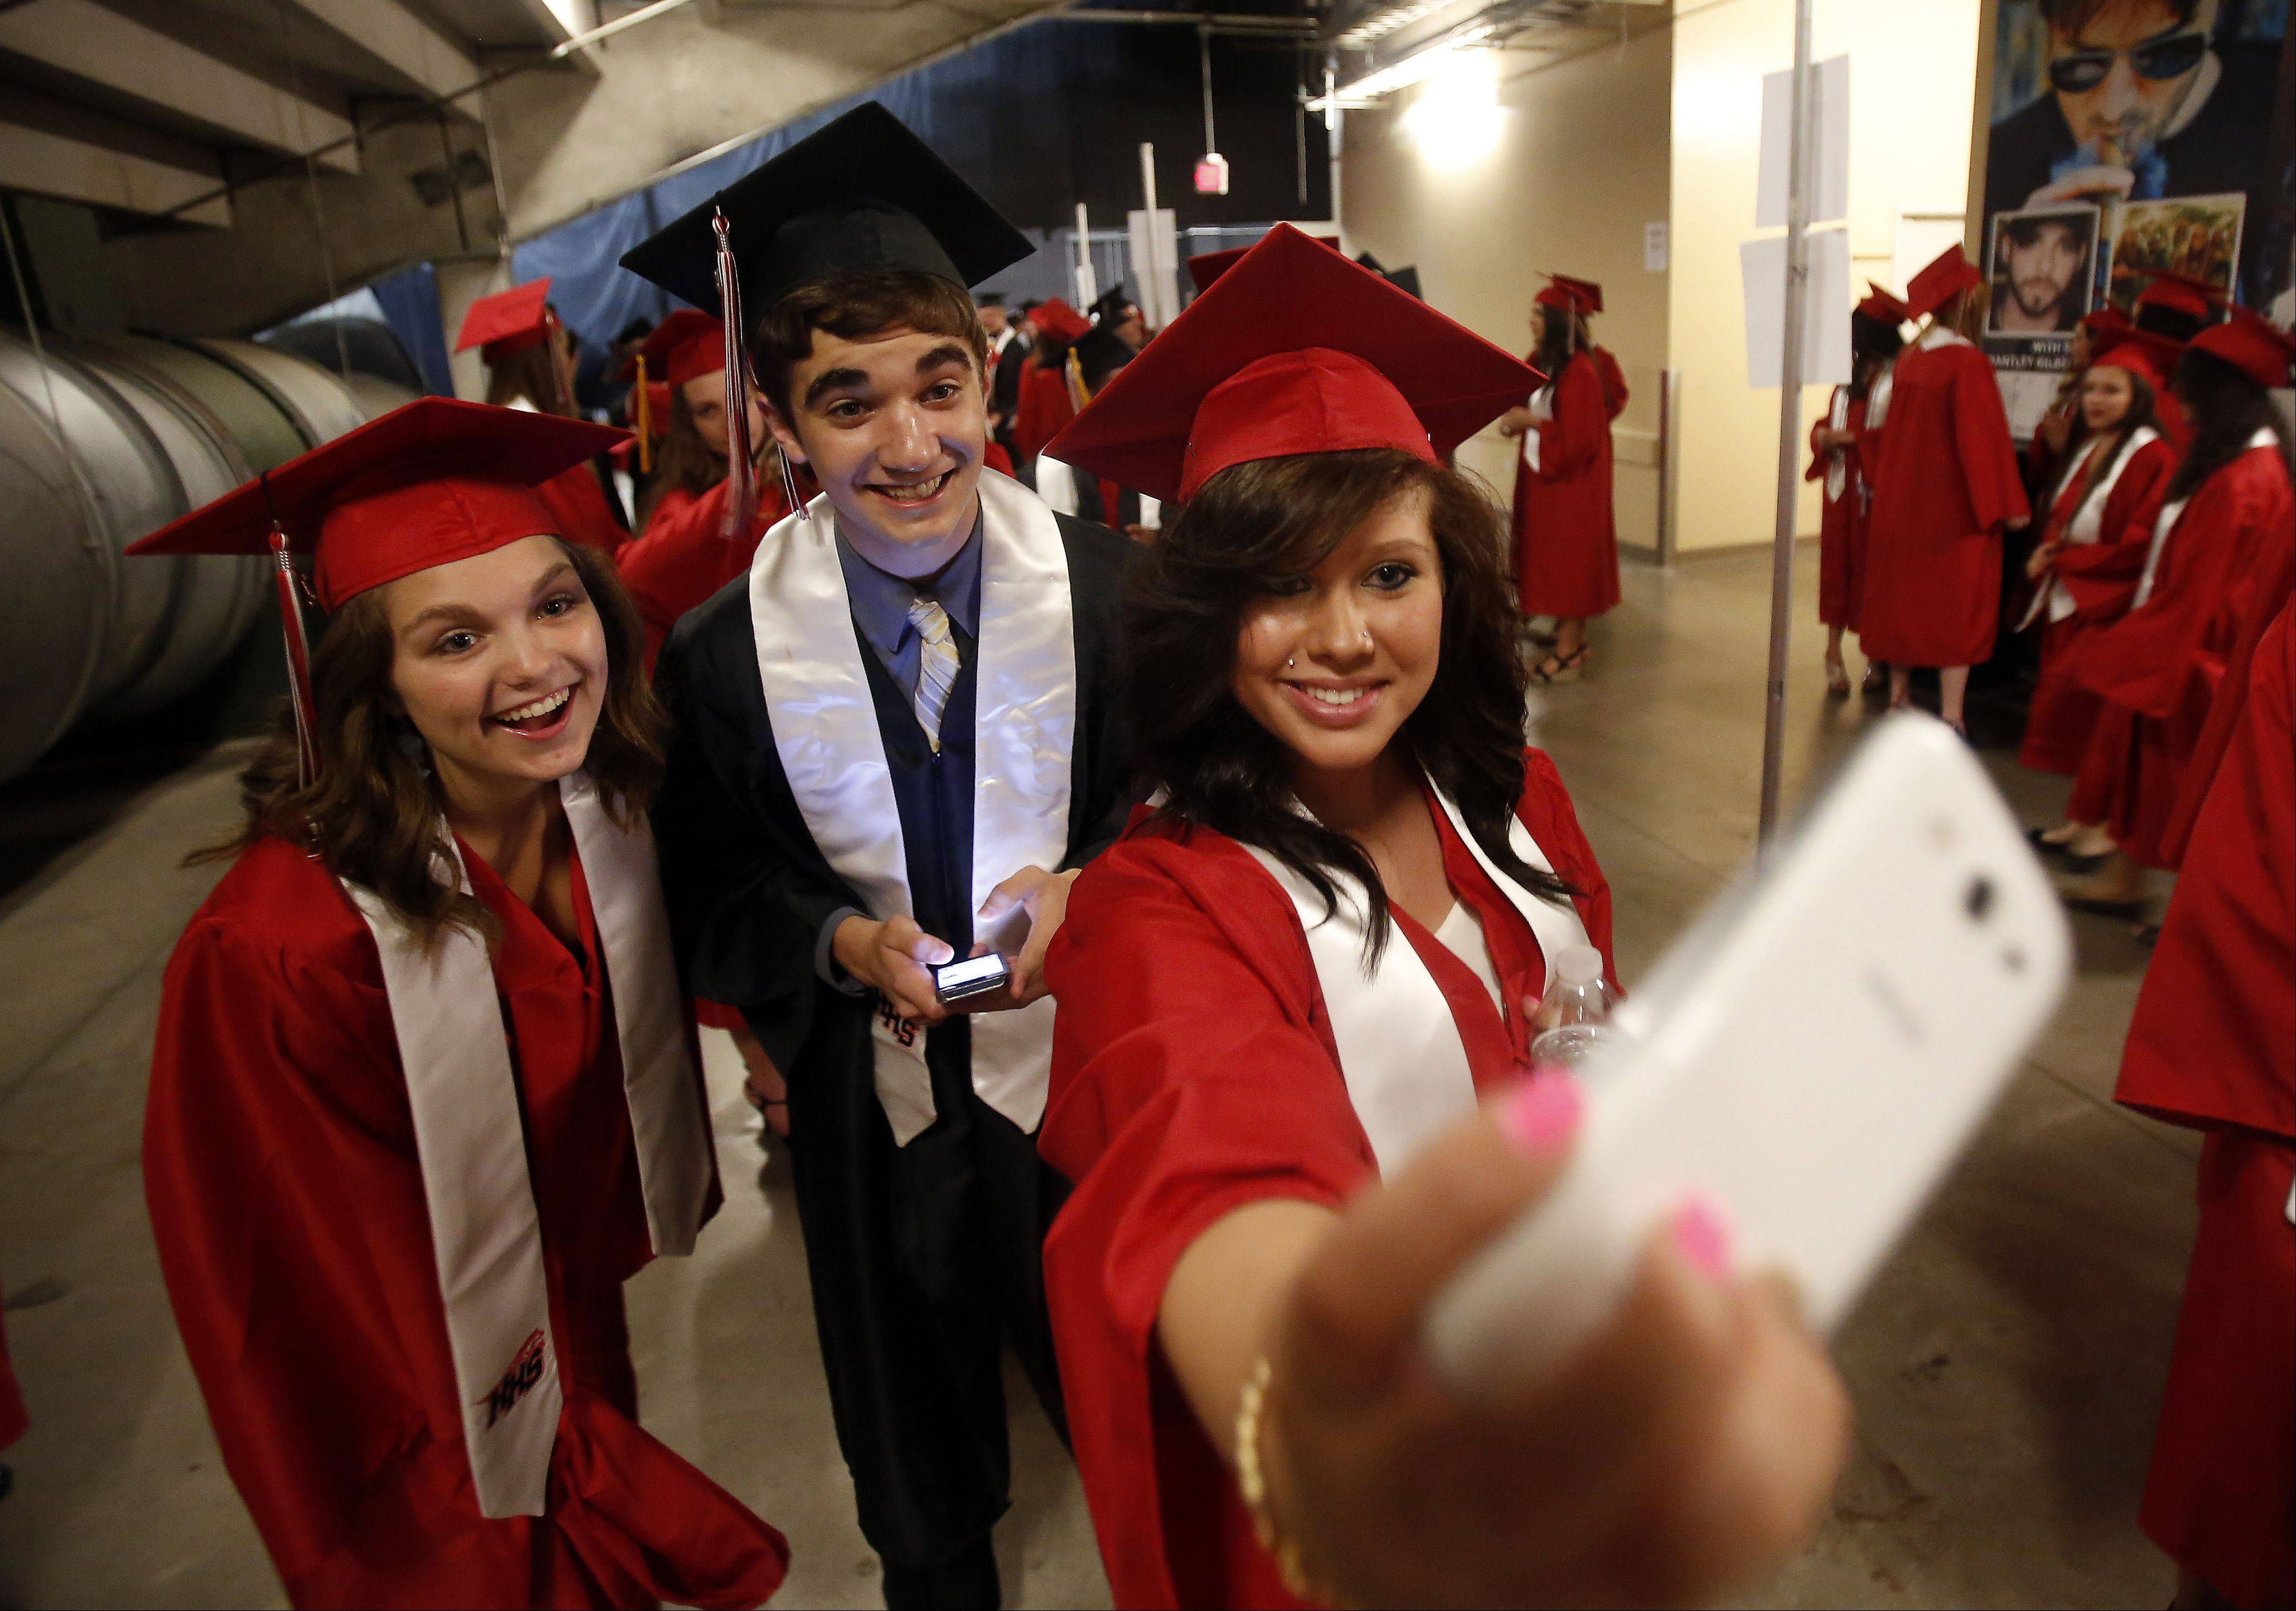 Sydney Skubal, from left, Joshua Smith and Nicole Smith pose for a quick cell phone picture before the Huntley High School 2013 Commencement ceremonies Saturday at the Sears Centre in Hoffman Estates.